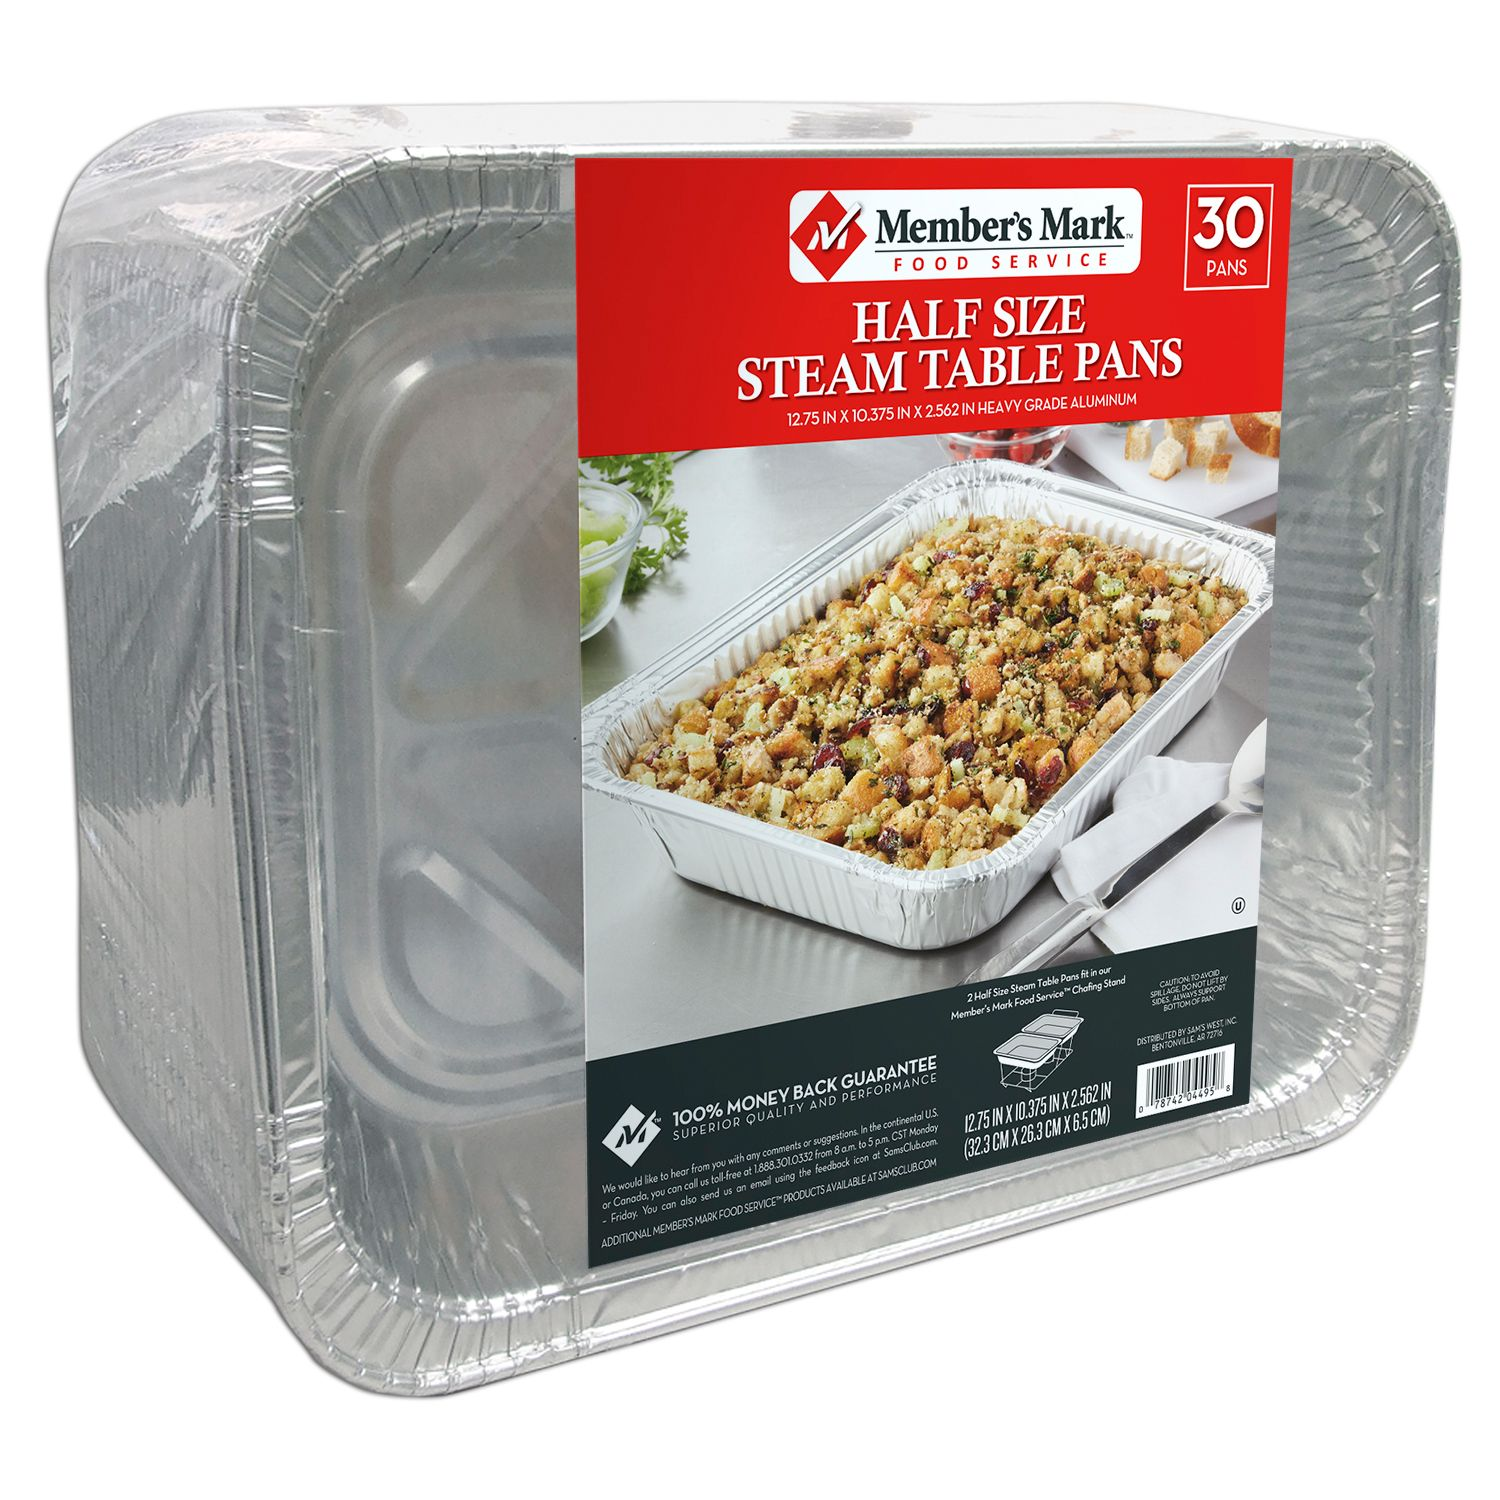 Bakers & Chef's Bakers & Chefs Aluminum Steam Table Pans - 30ct at Sears.com